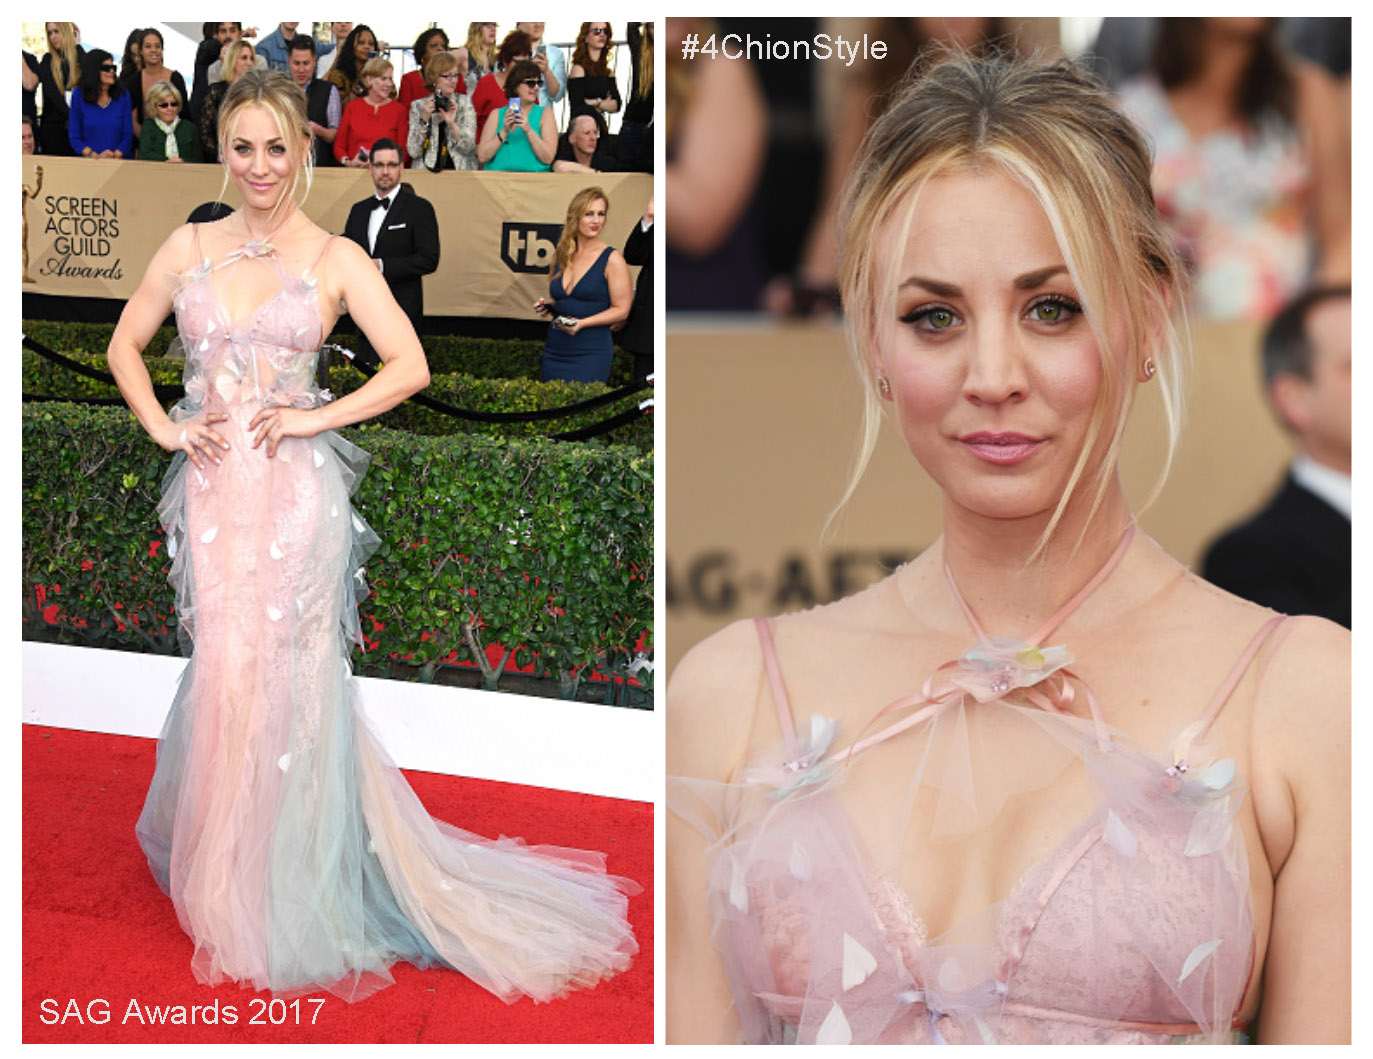 kaley-cuoco-sag-awards-red-carpet-4chion-lifestyle